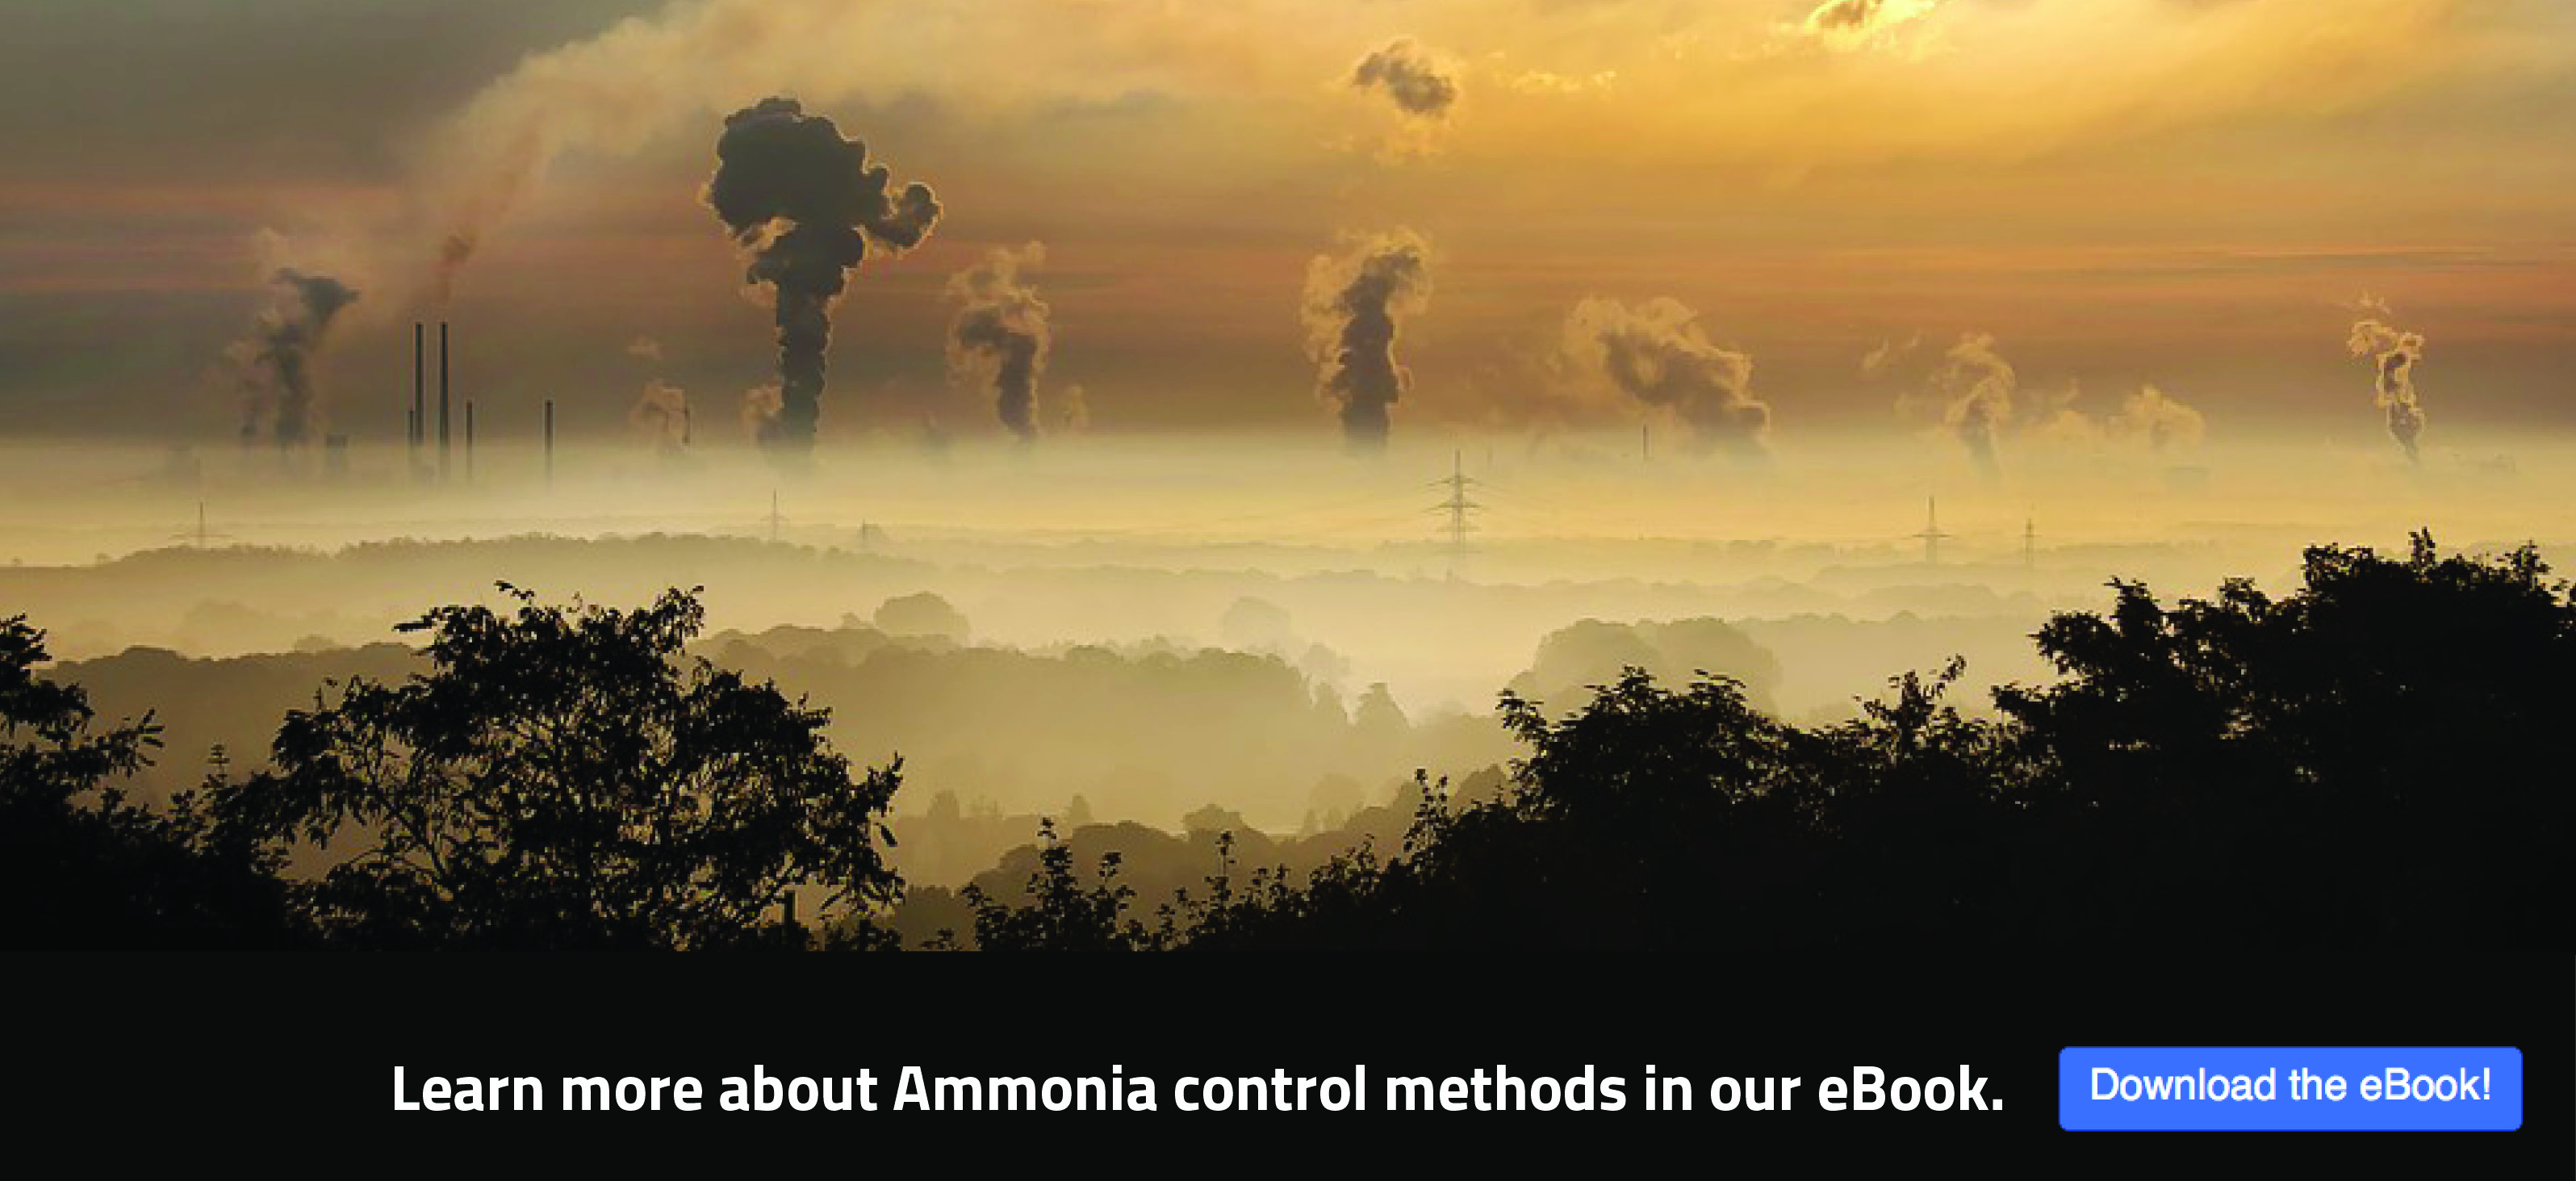 Download our eBook on Ammonia Emission Control!